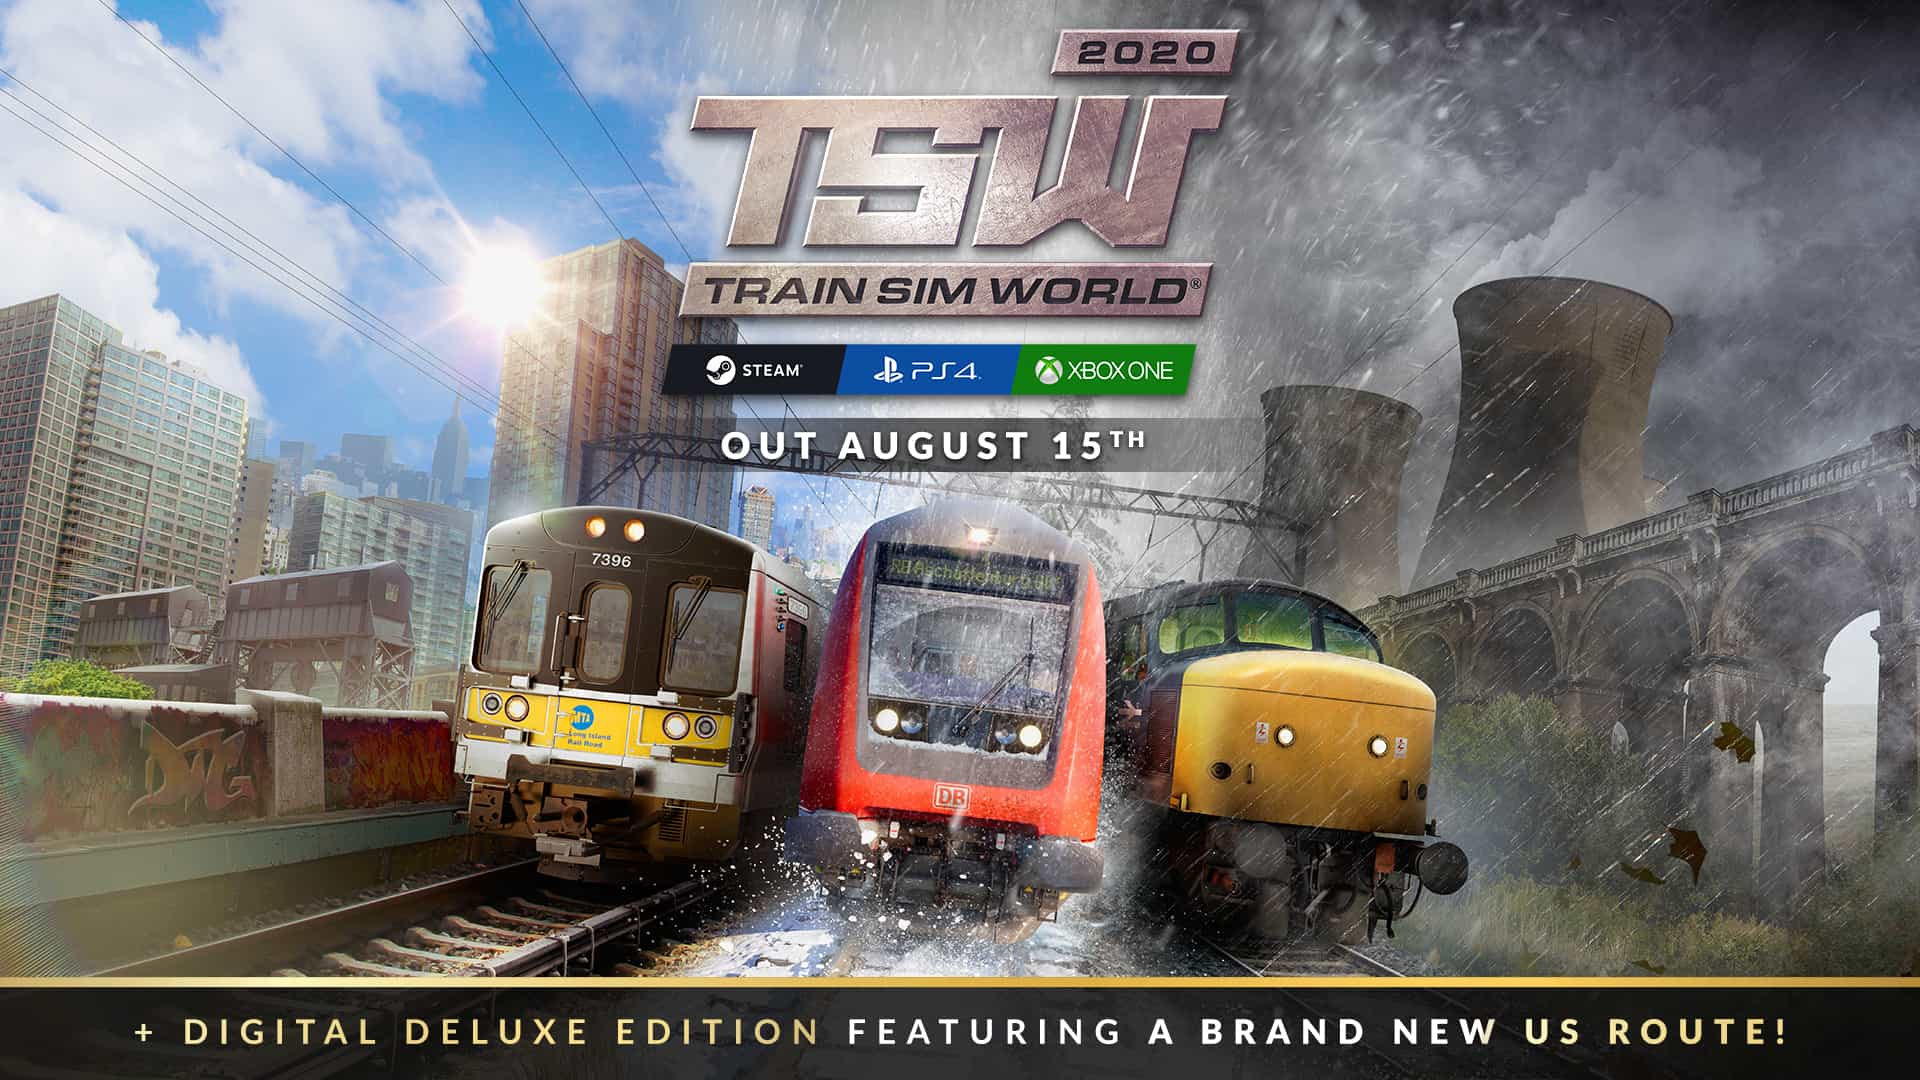 Xbox Free Games August 2020.Introducing Train Sim World 2020 Dovetail Games Forums